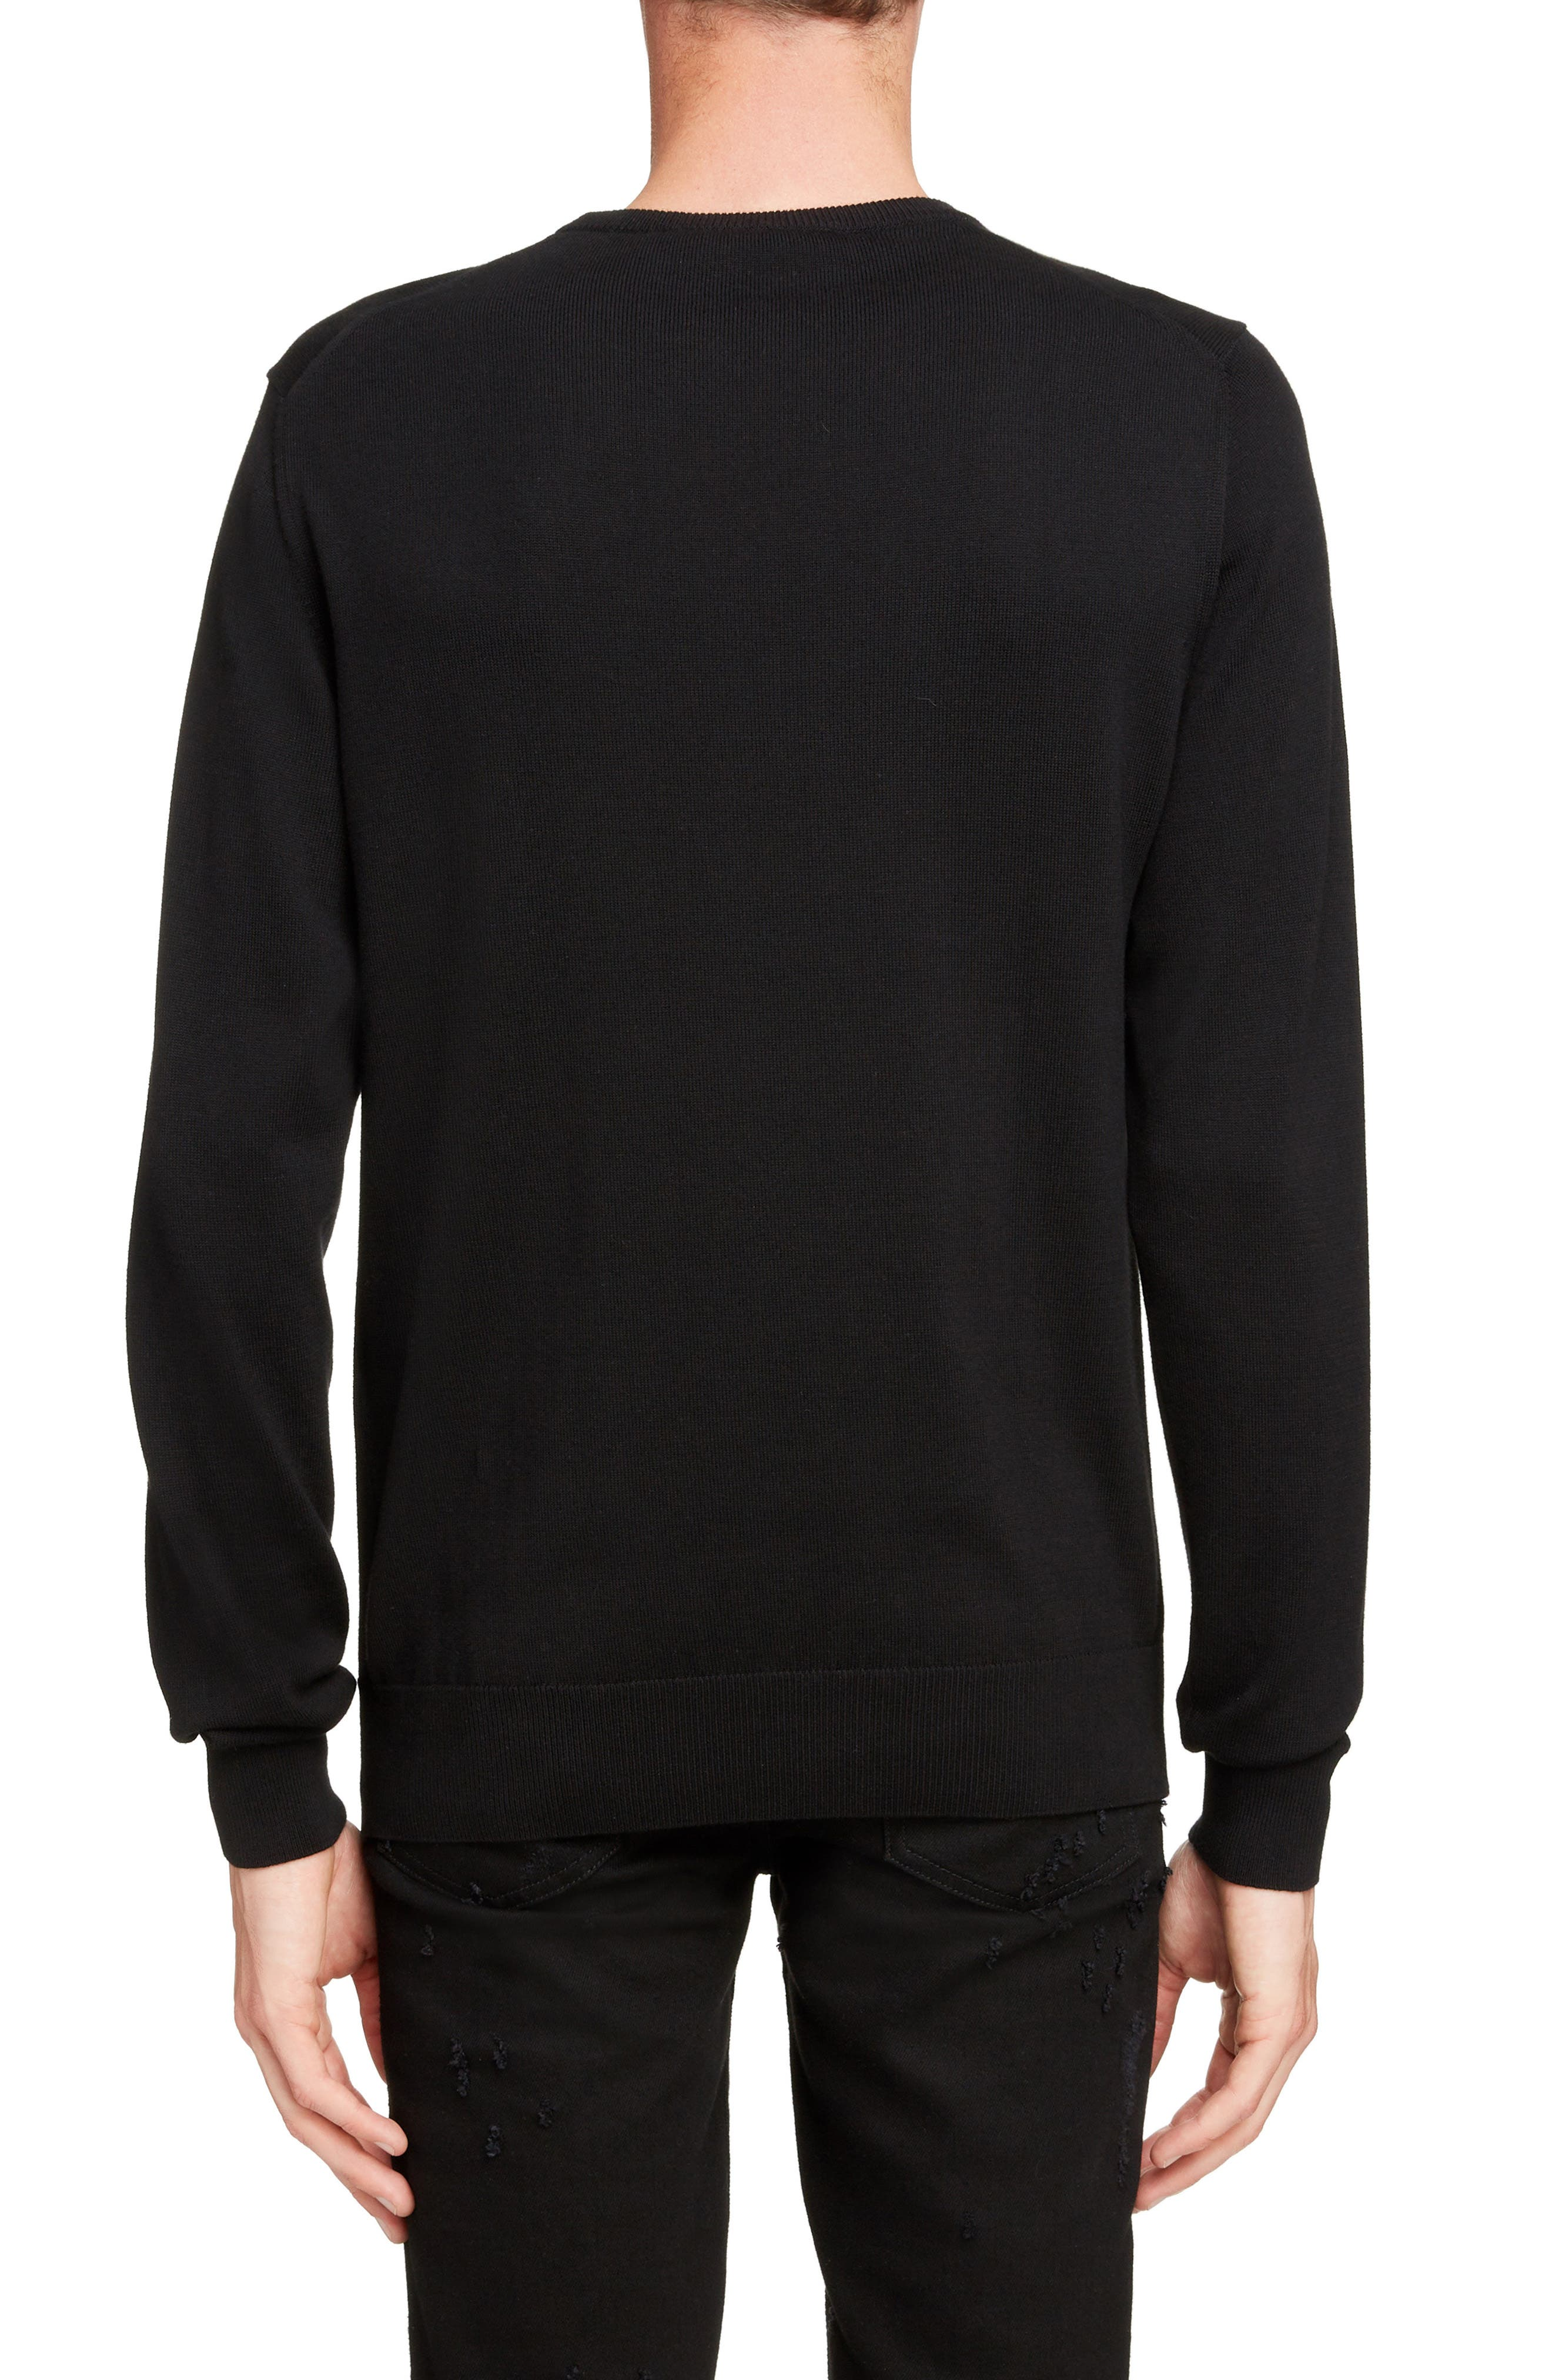 GIVENCHY,                             Tonal Vertical Logo Sweater,                             Alternate thumbnail 2, color,                             BLACK